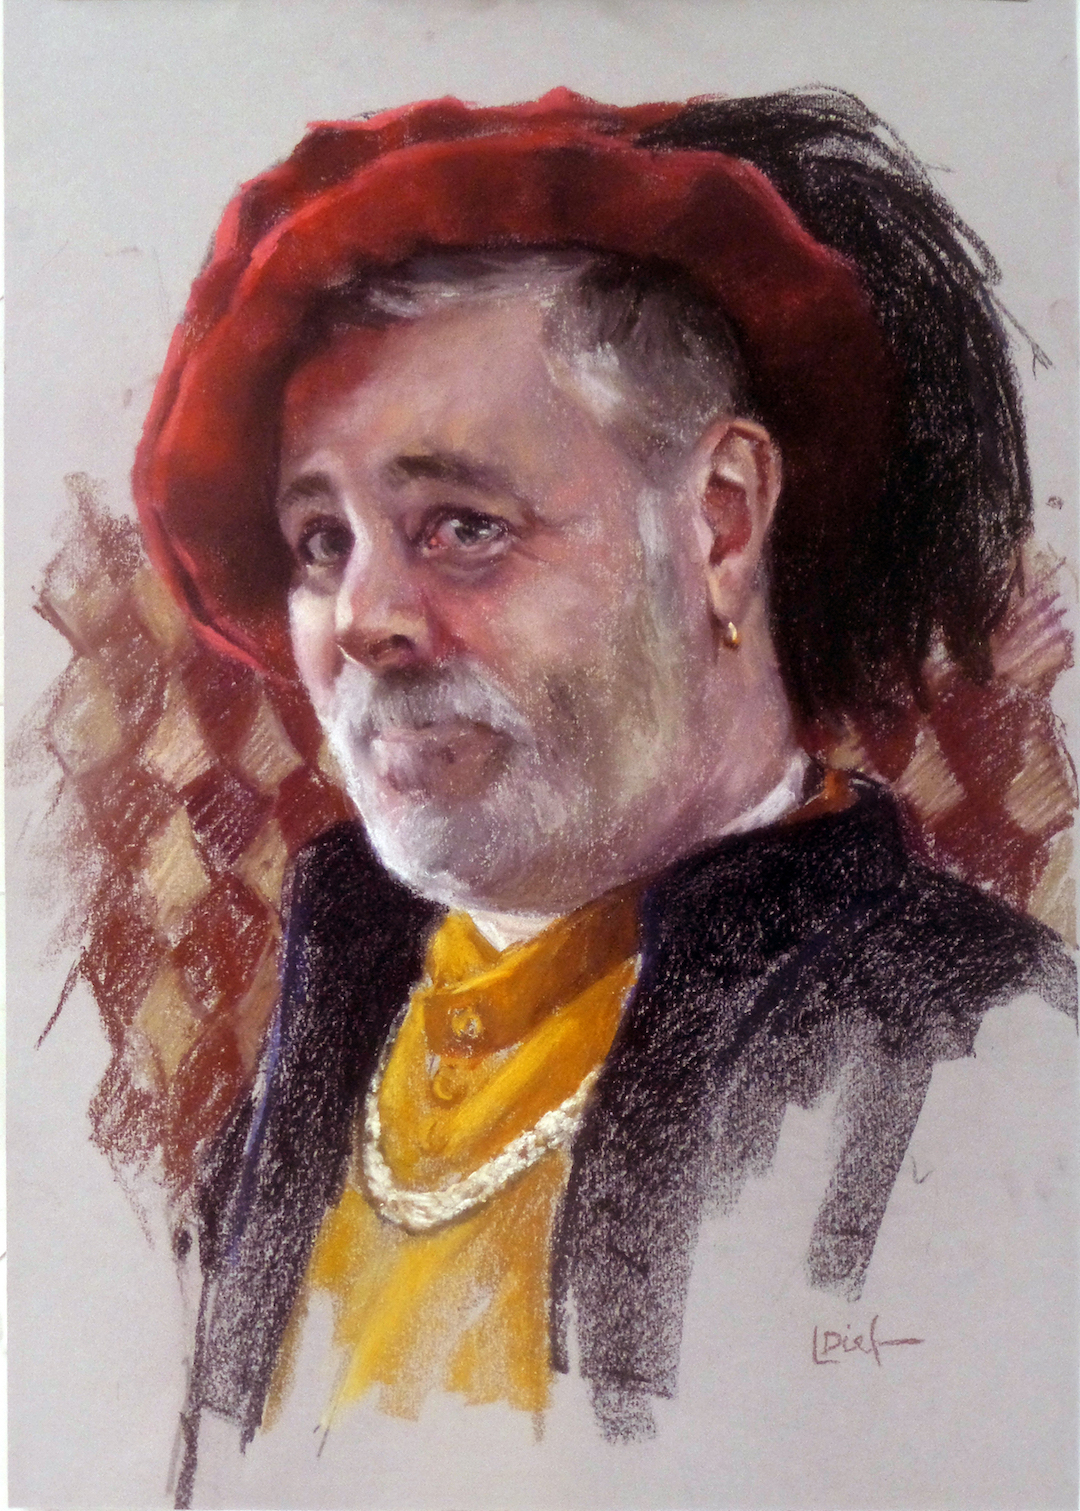 """Lyn Diefenbach, """"Stirling Castle Guide,"""" April 2016, Pastel on Canson Mi-Teintes, 22 x 15 in. Sold. A brief demonstration that successfully captured the character."""